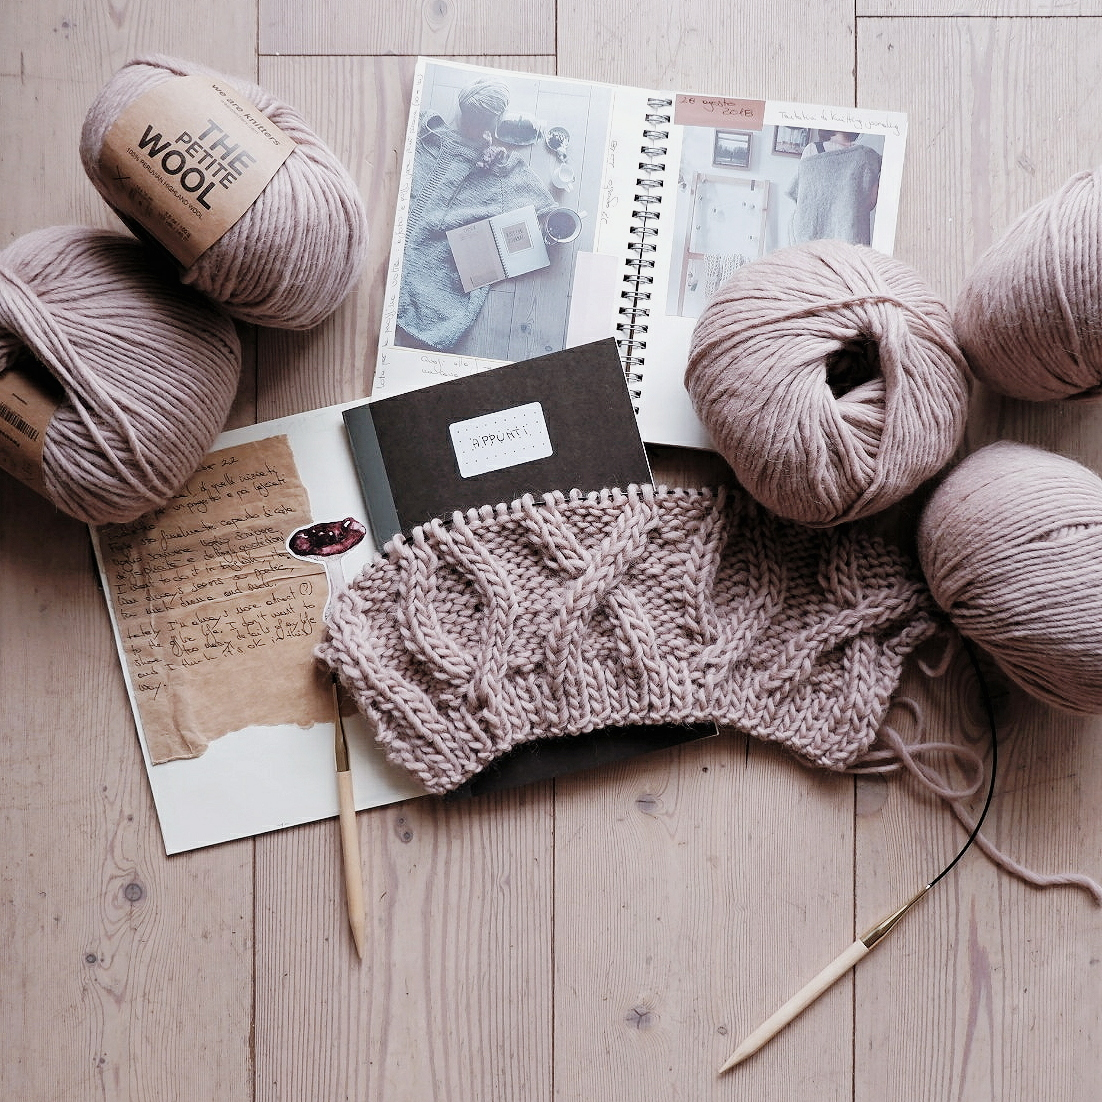 St. Michel Cardigan - We Are Knitters